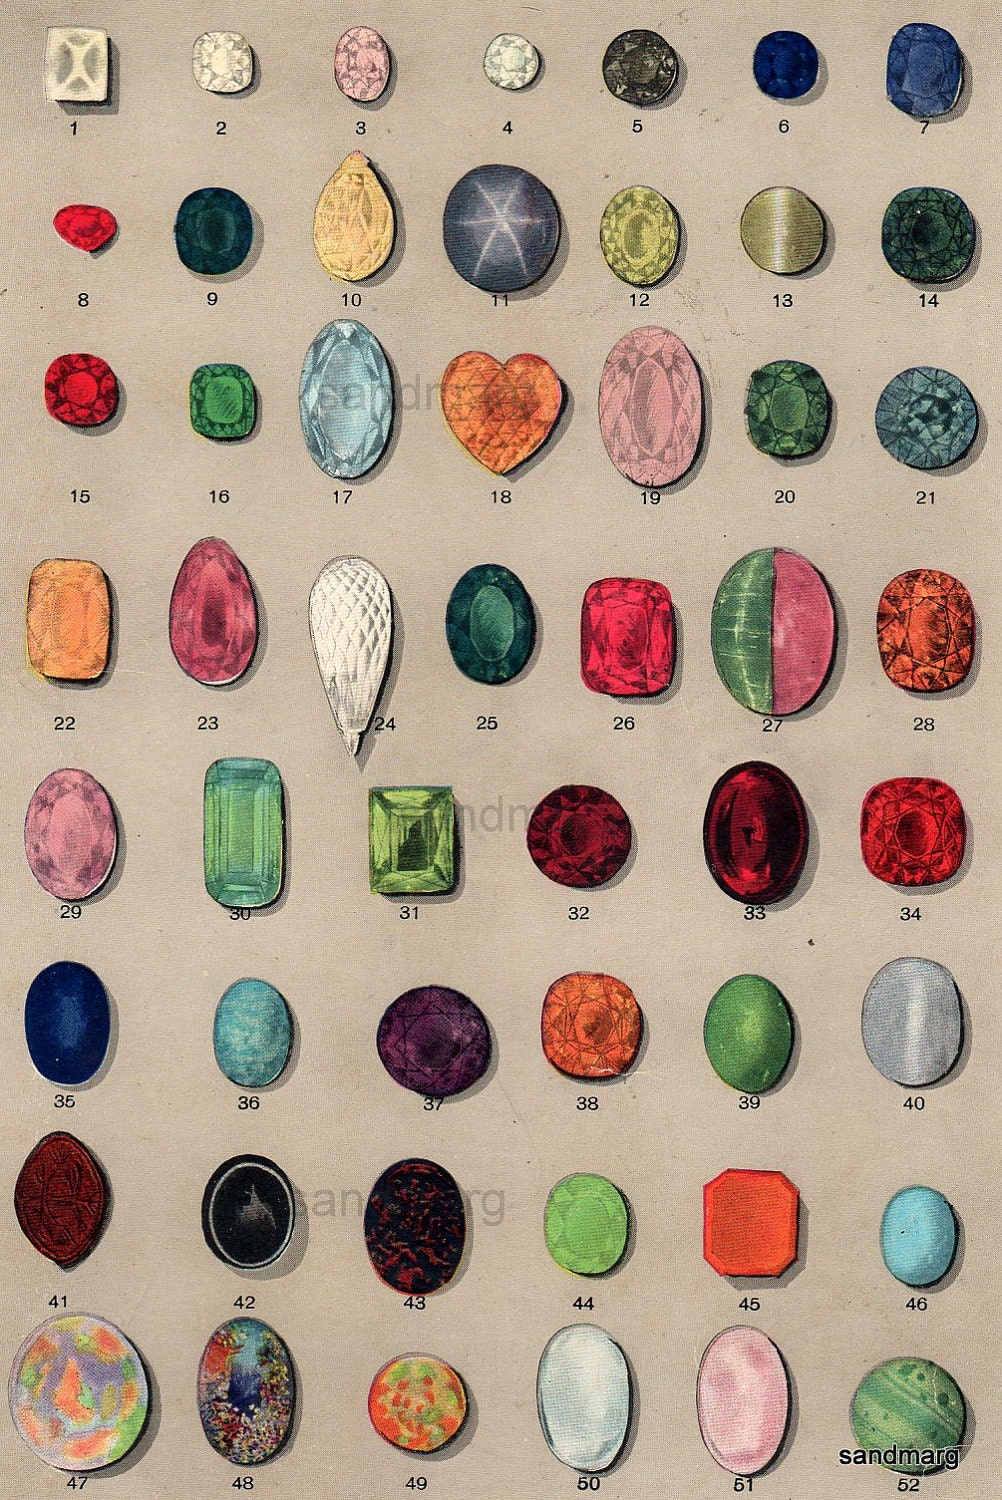 Semi Precious Stones Identification 1921 morgan tiffany chart of ...